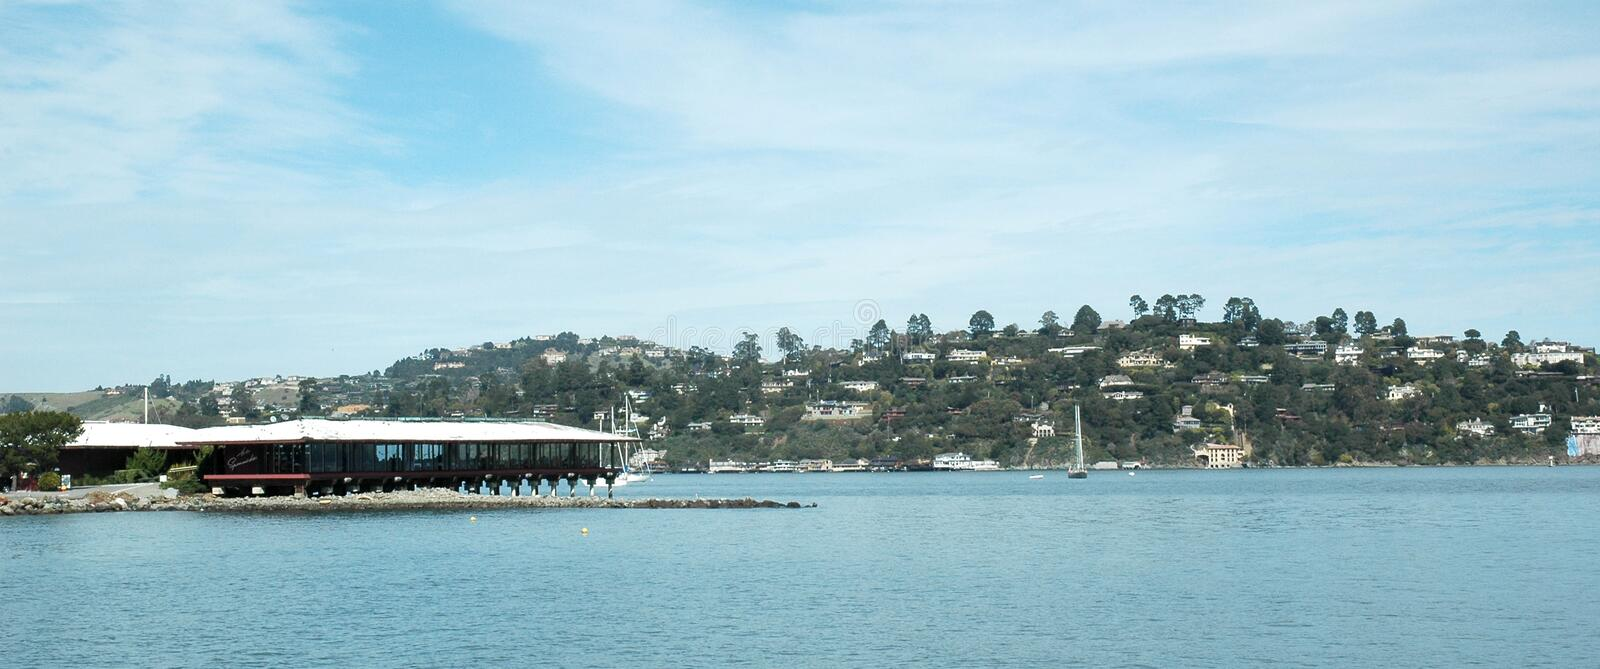 Download Sausalito stock image. Image of buildings, area, pacific - 5538135